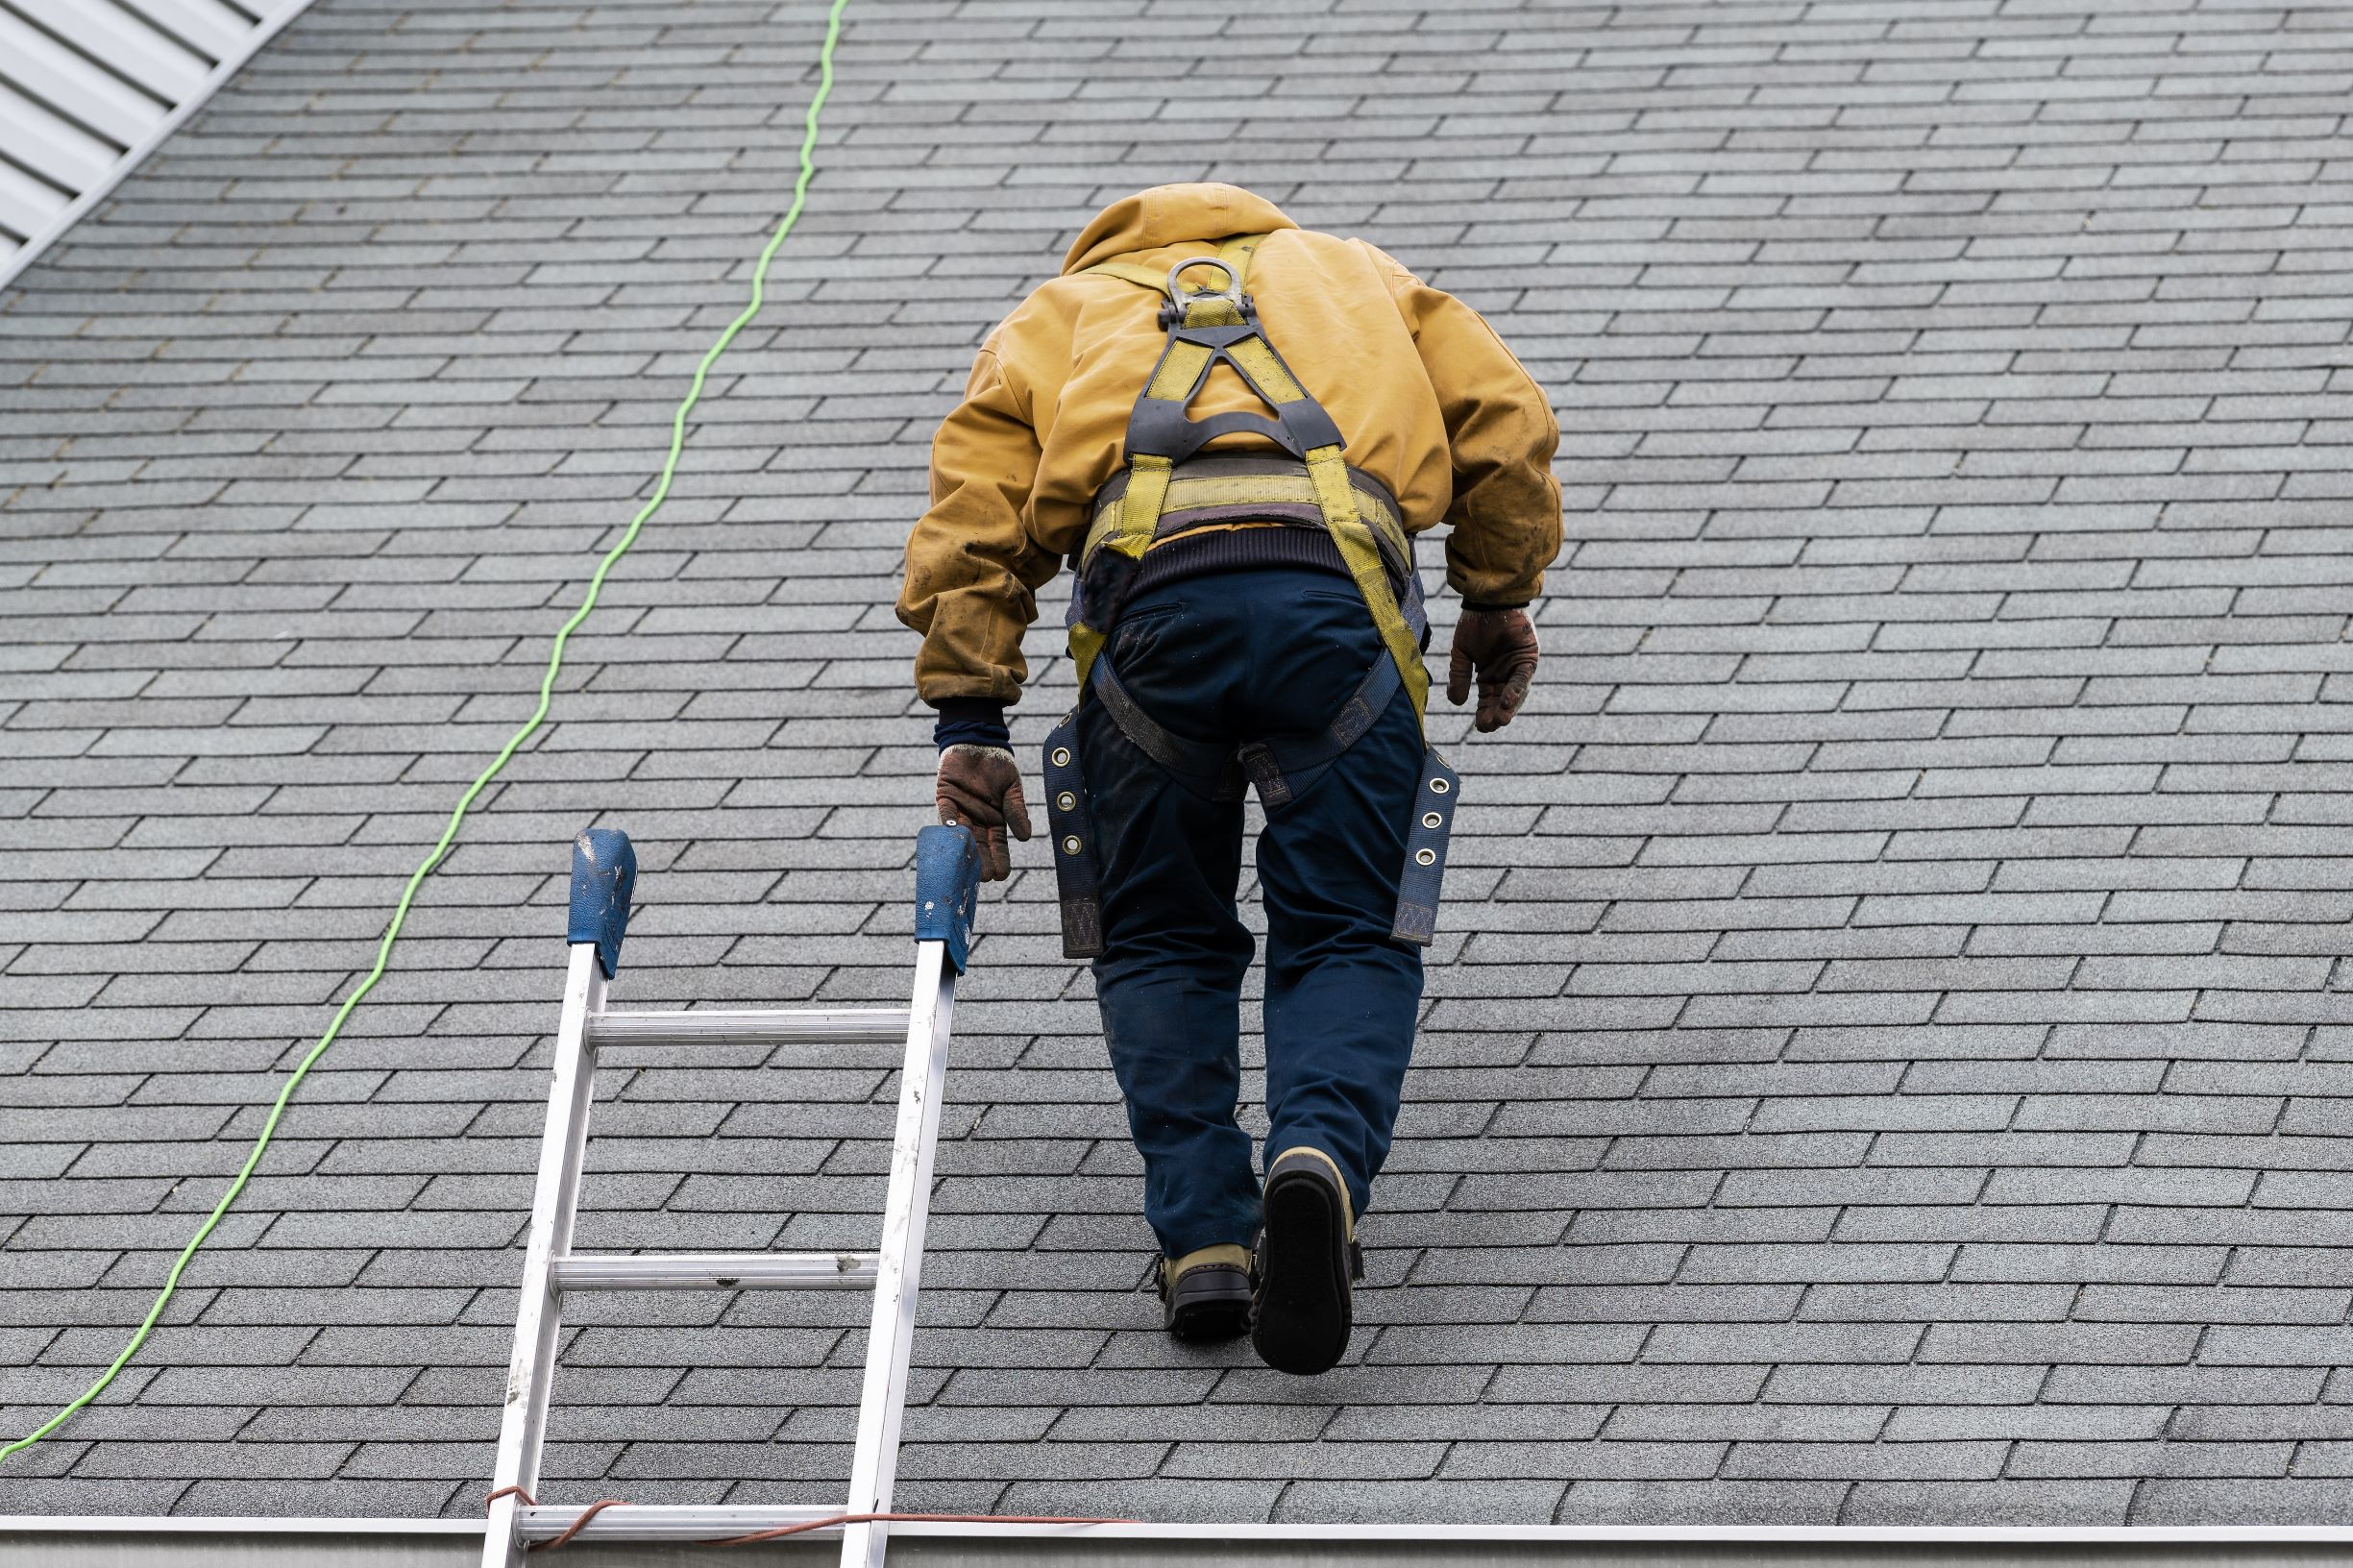 Man on shingle roof performing inspection